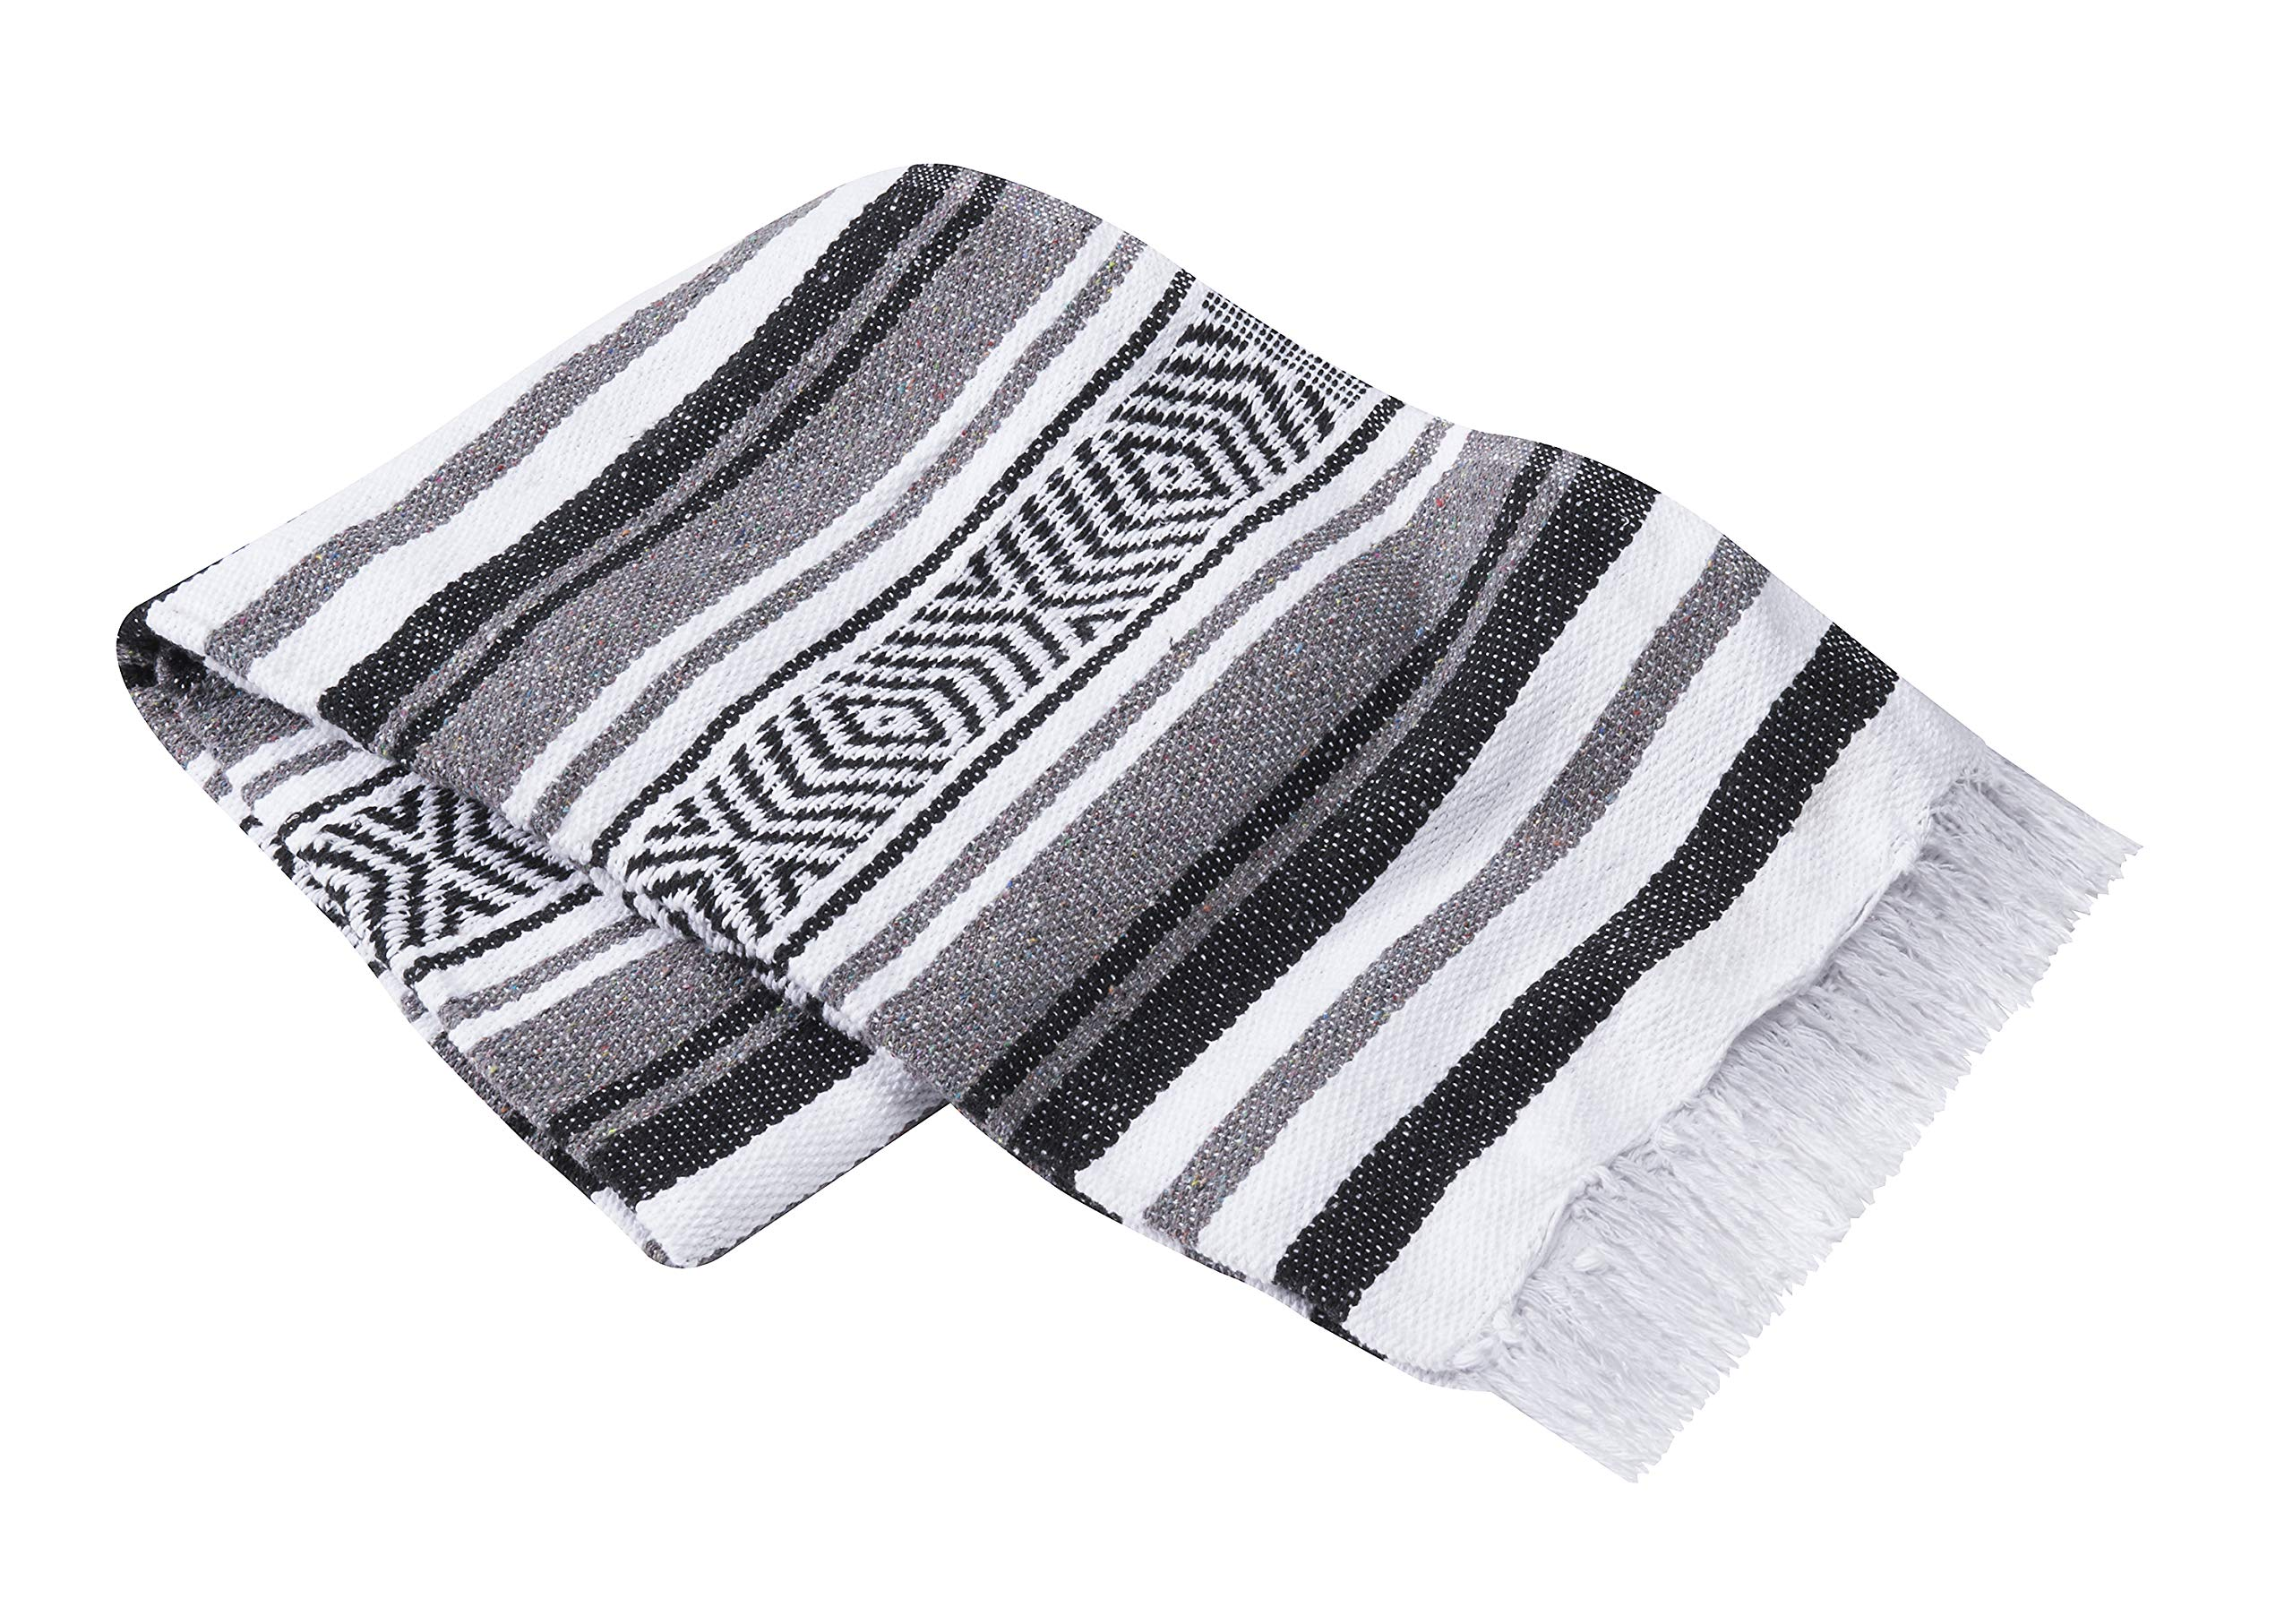 Vera Cruz - Mexican Yoga Blankets - 10-Pack - Wholesale Pricing - Made in Mexico (Gray/White/Black)